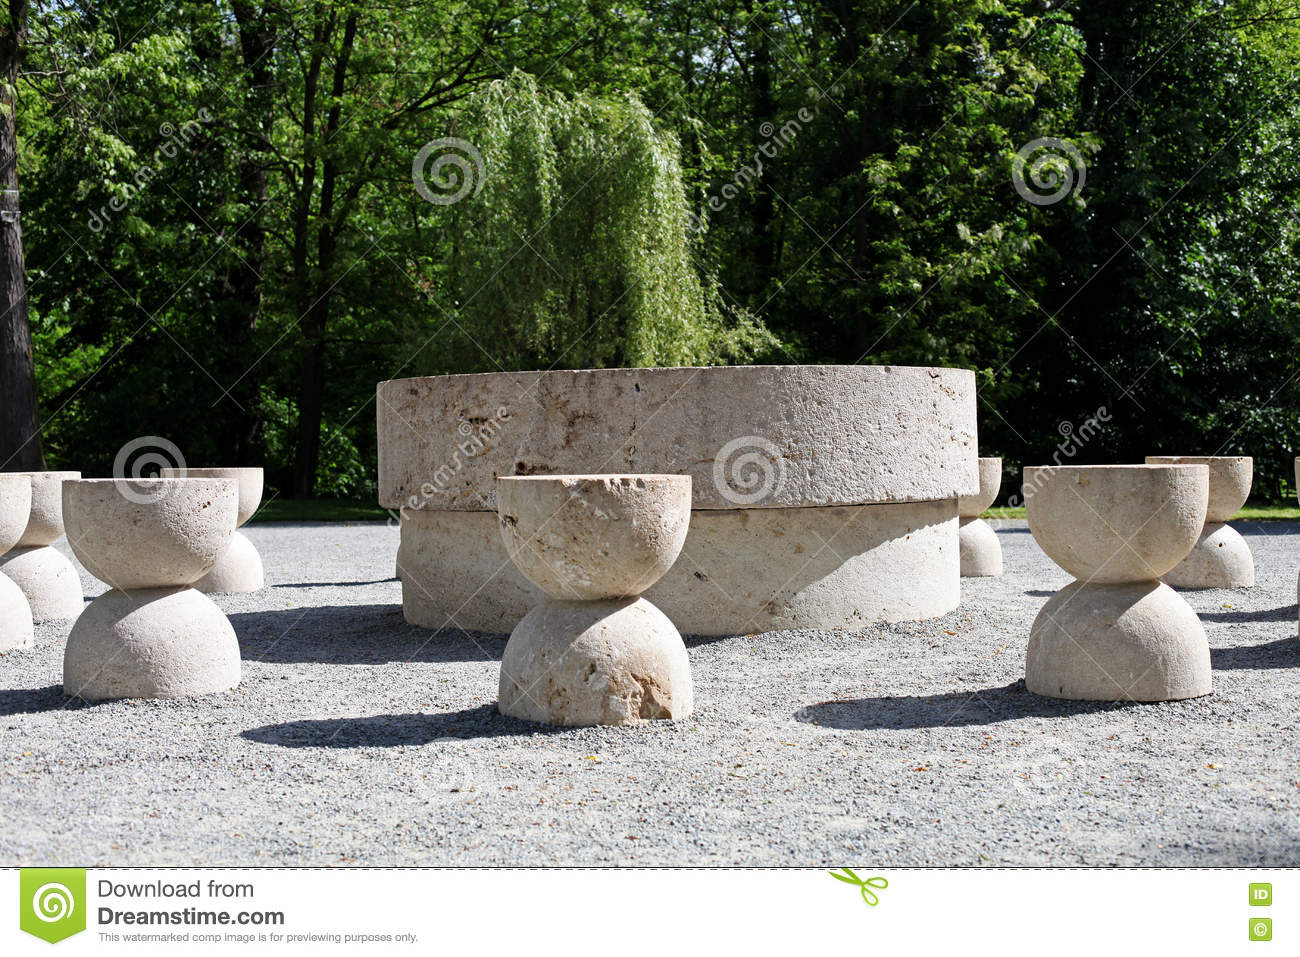 The Table Of Silence Of Constantin Brancusi, Targu Jiu, Romania ... for Brancusi Table Of Silence  21ane